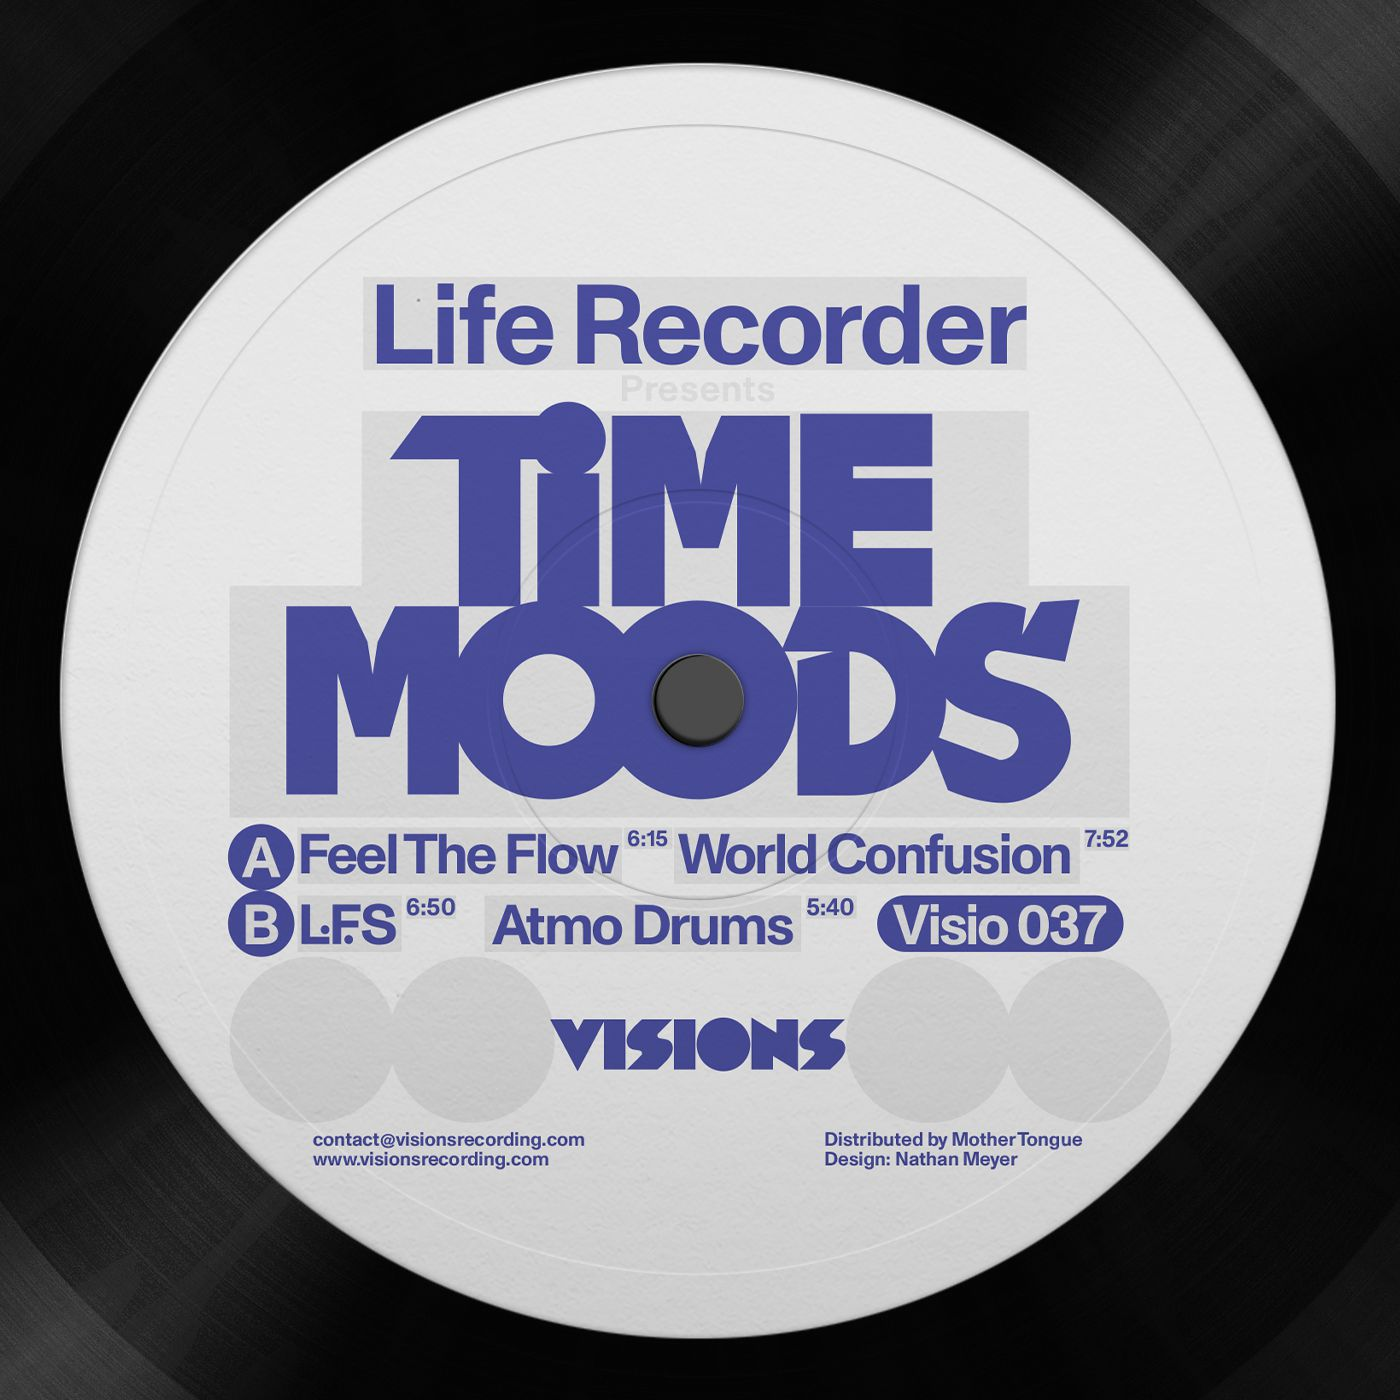 Life Recorder - Time Moods EP